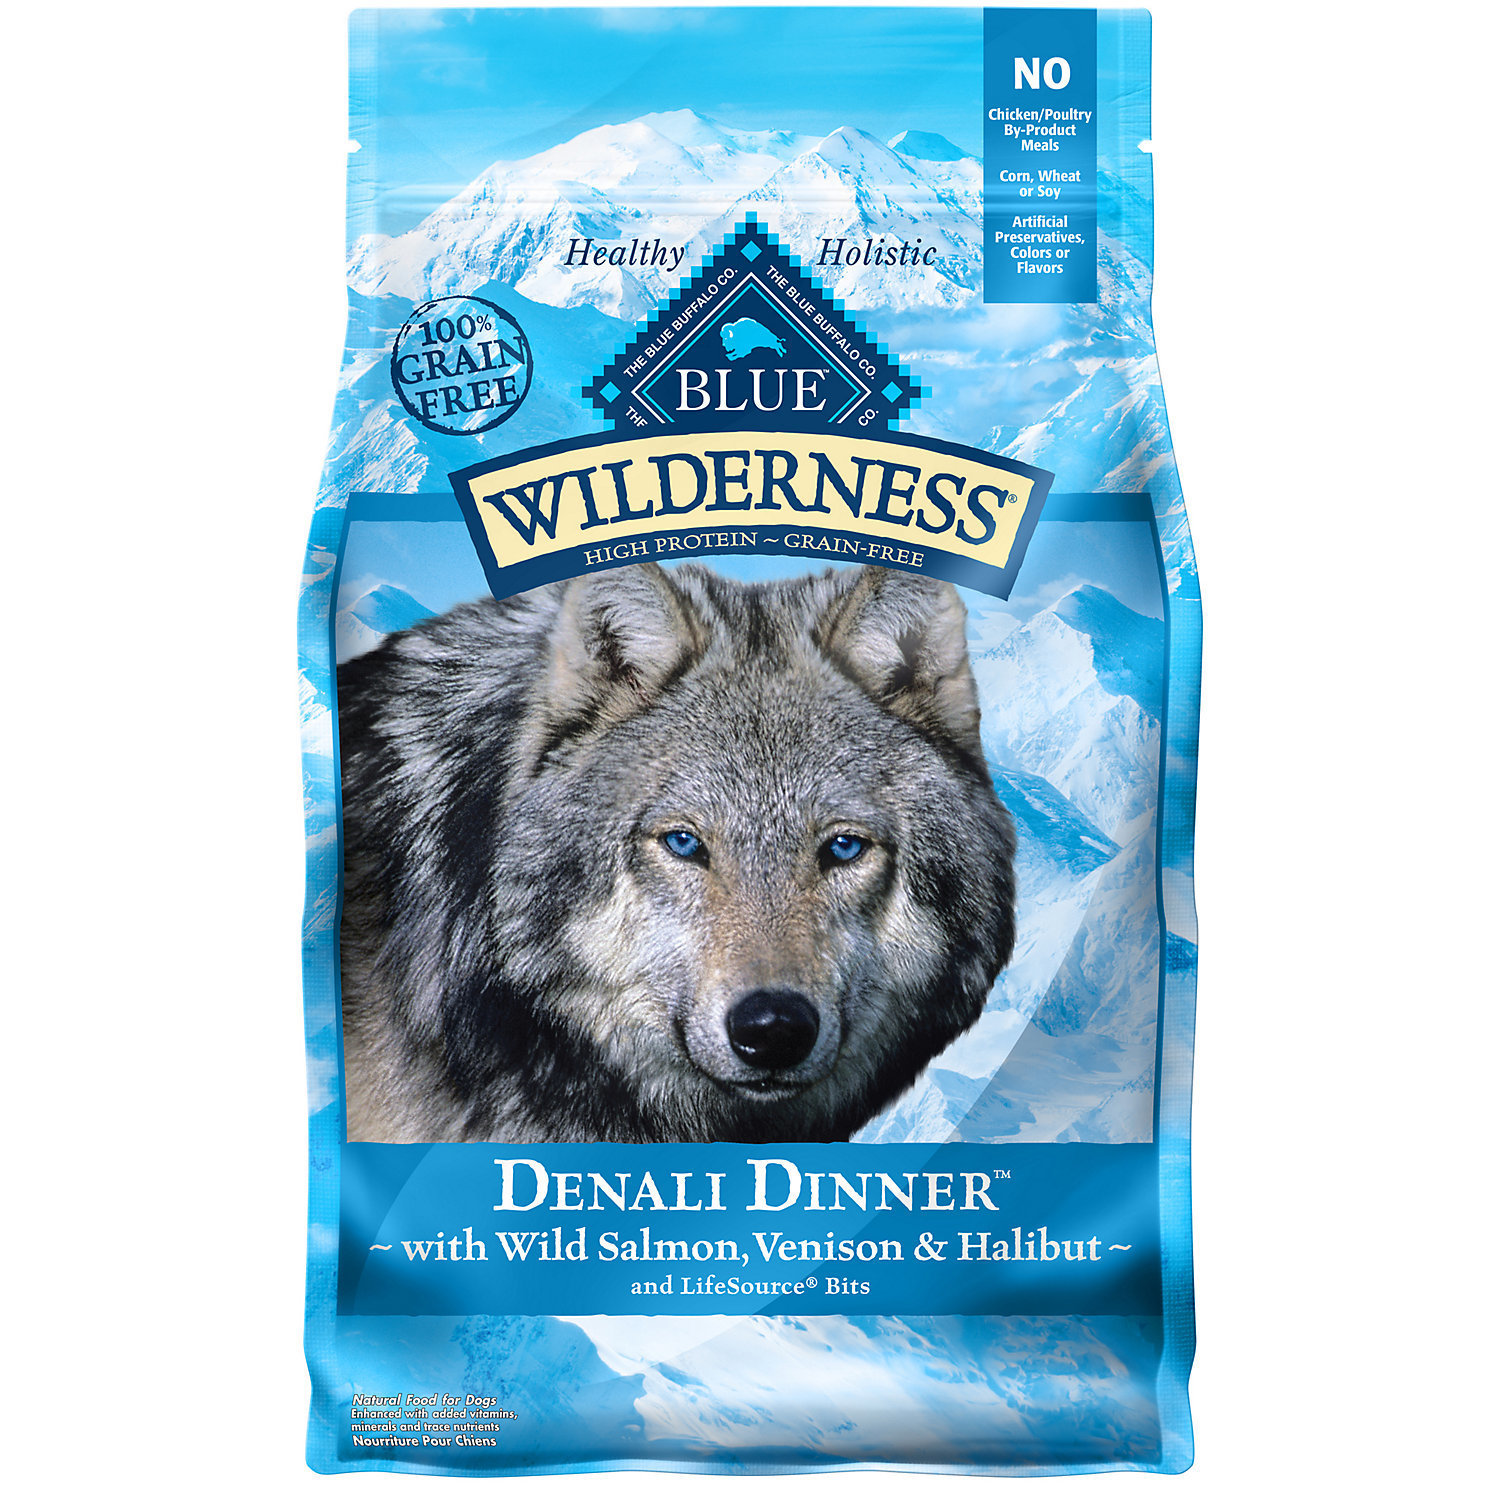 BLUE Wilderness Denali Dinner with Wild Salmon, Venison, & Halibut Dry Dog Food, 4 lb.